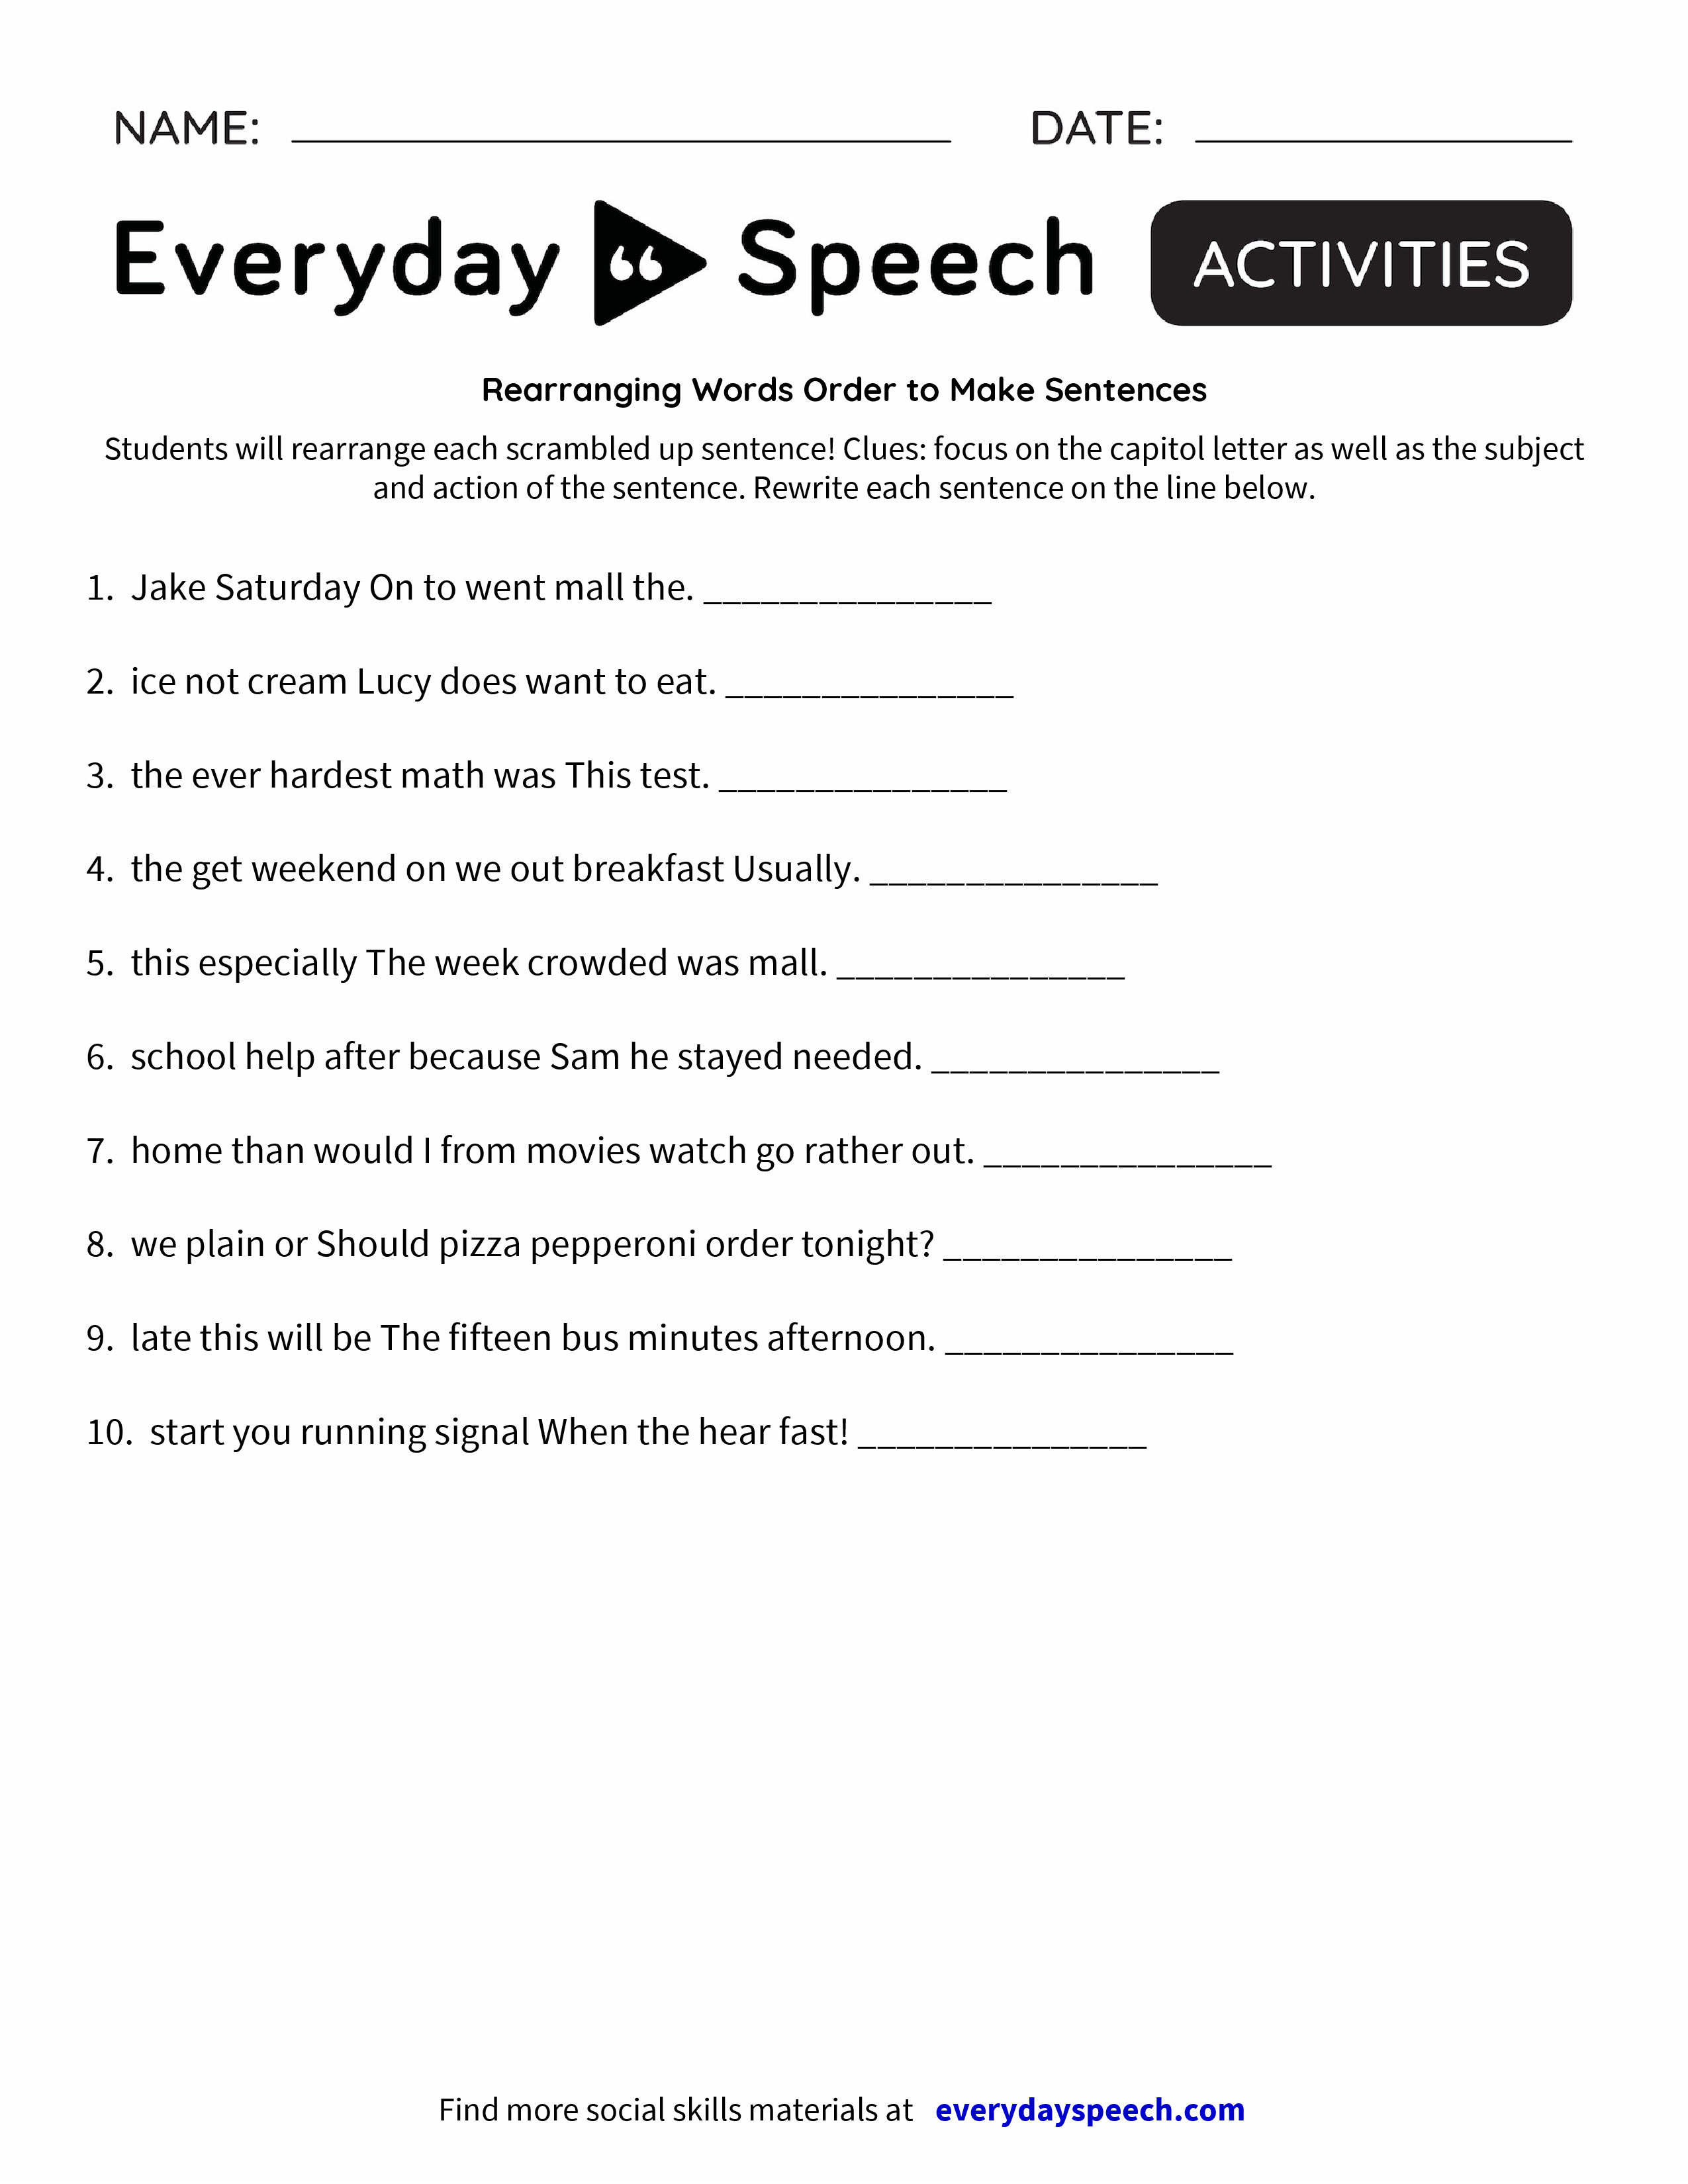 Make A Worksheet : Rearranging words order to make sentences everyday